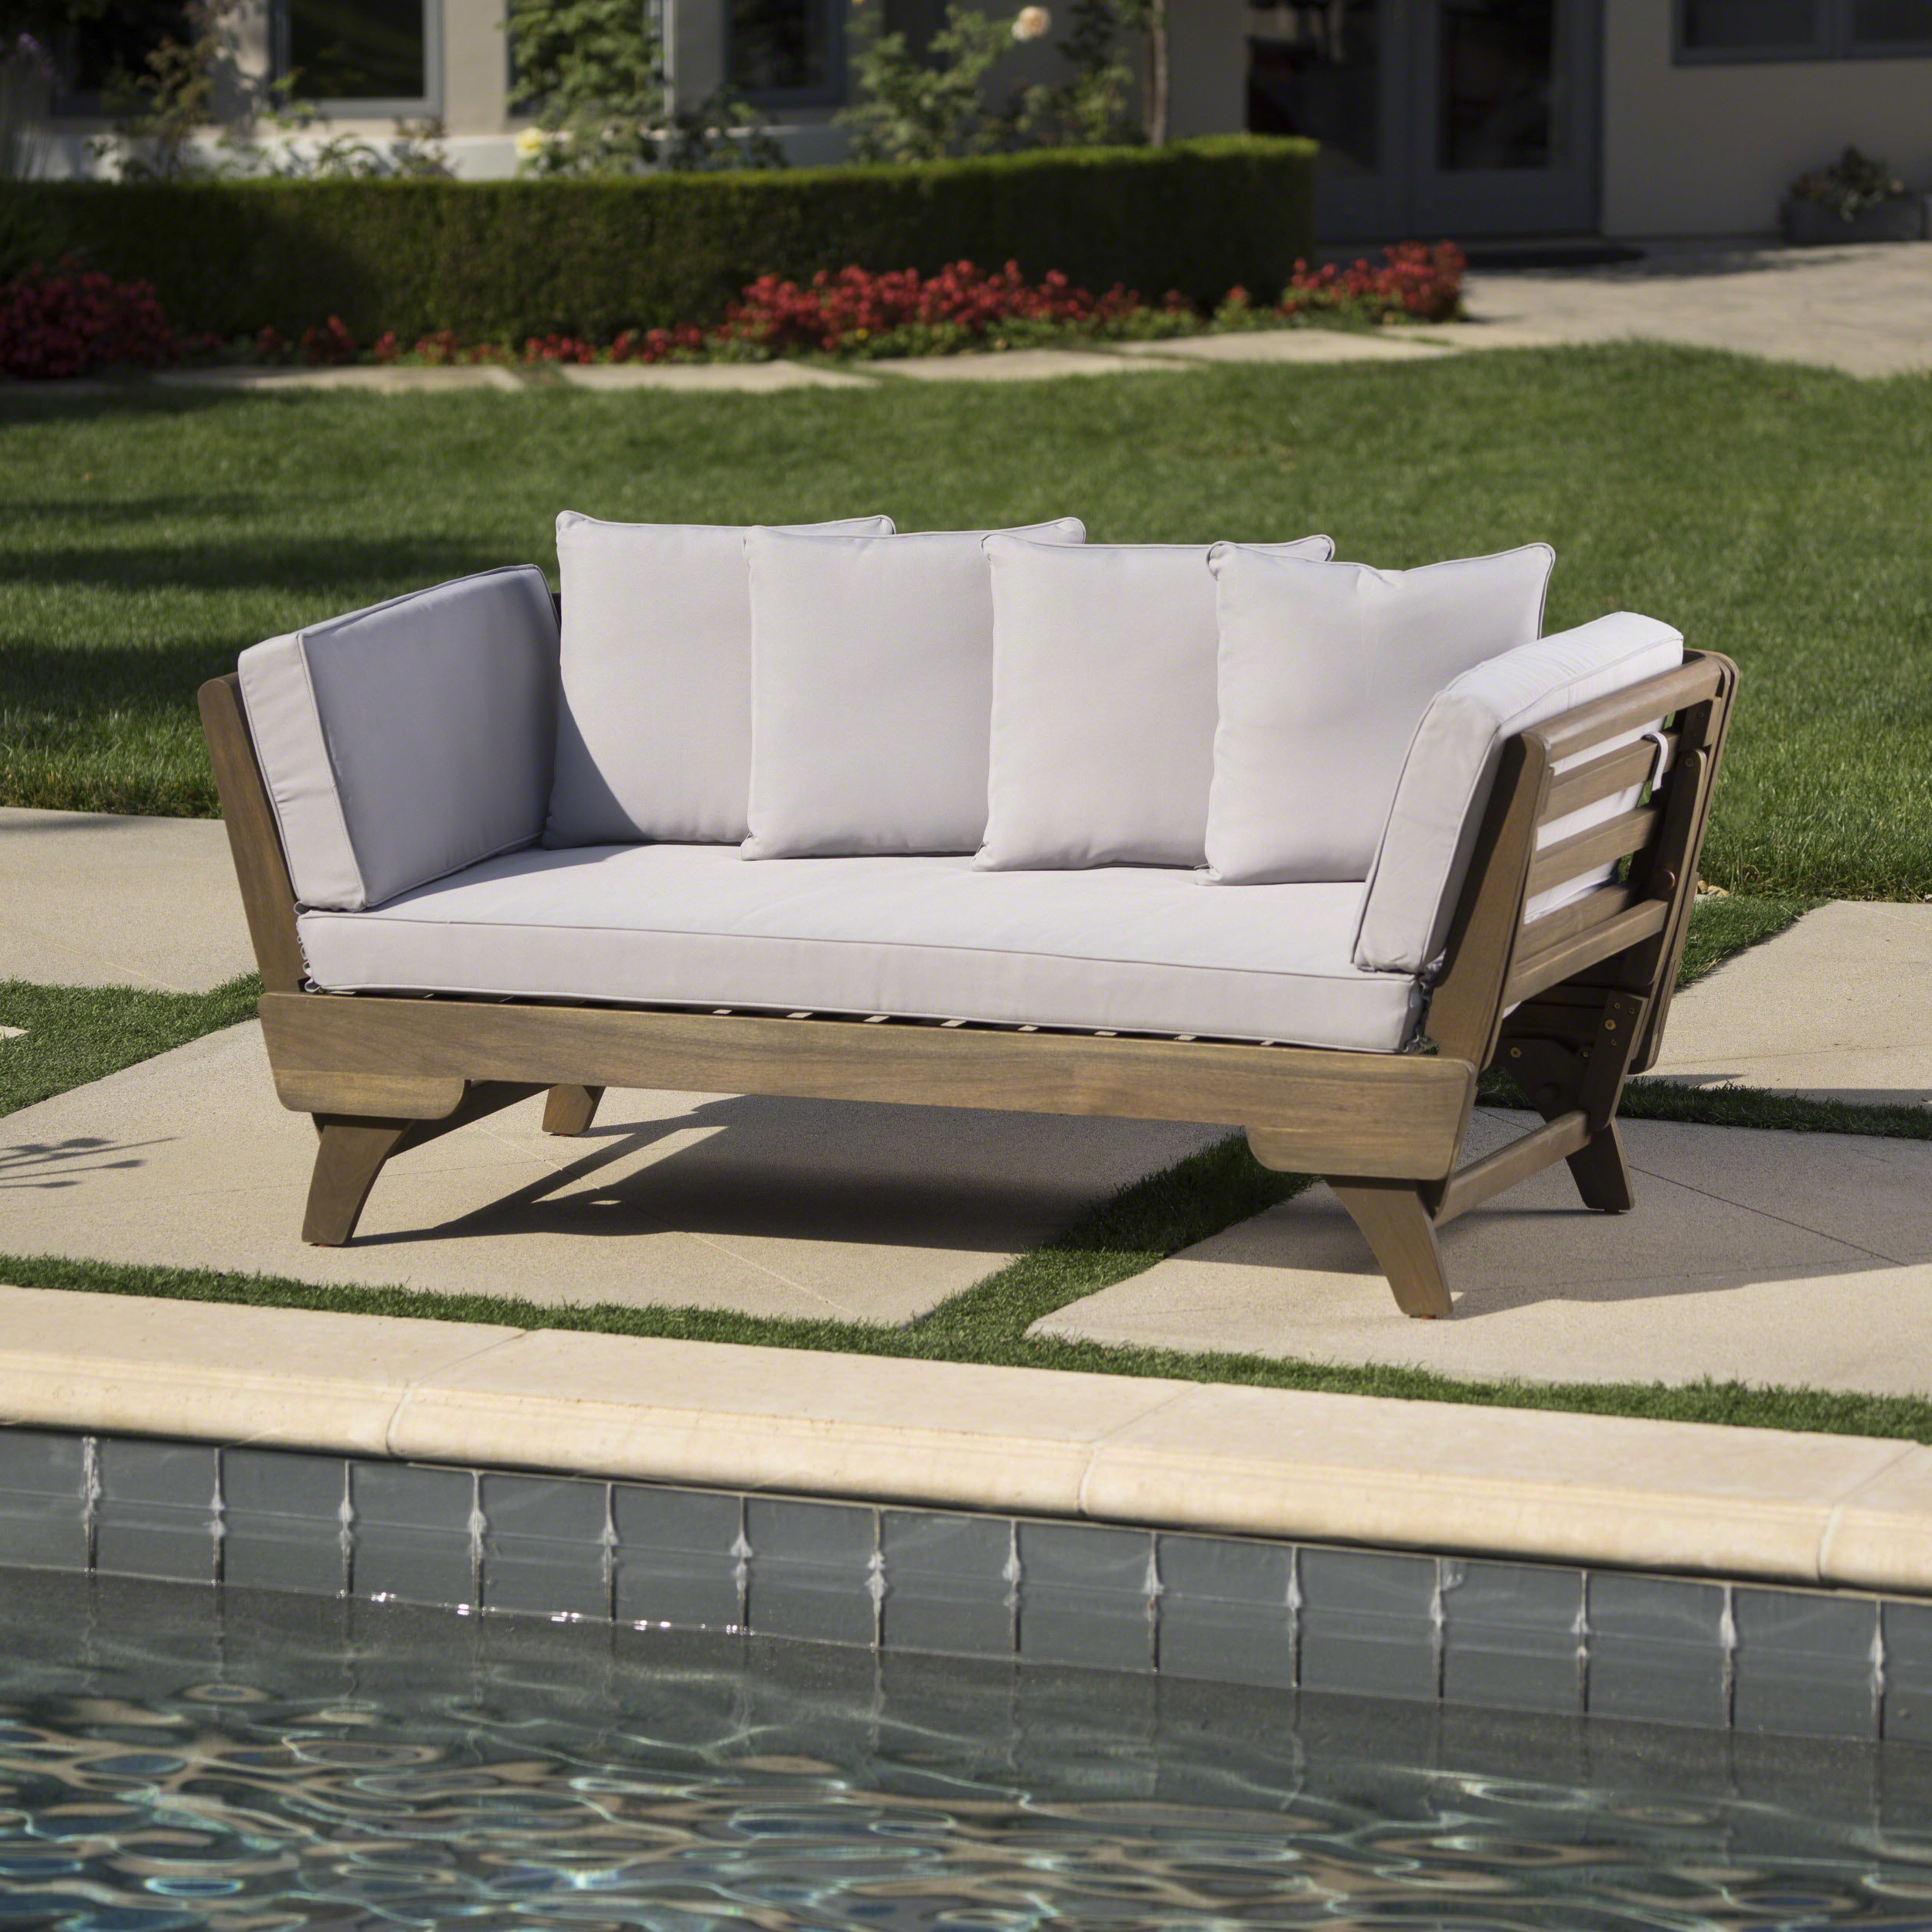 Latest Modern & Contemporary Patio Daybeds You'll Love In 2019 Pertaining To Clary Teak Lounge Patio Daybeds With Cushion (Gallery 18 of 20)